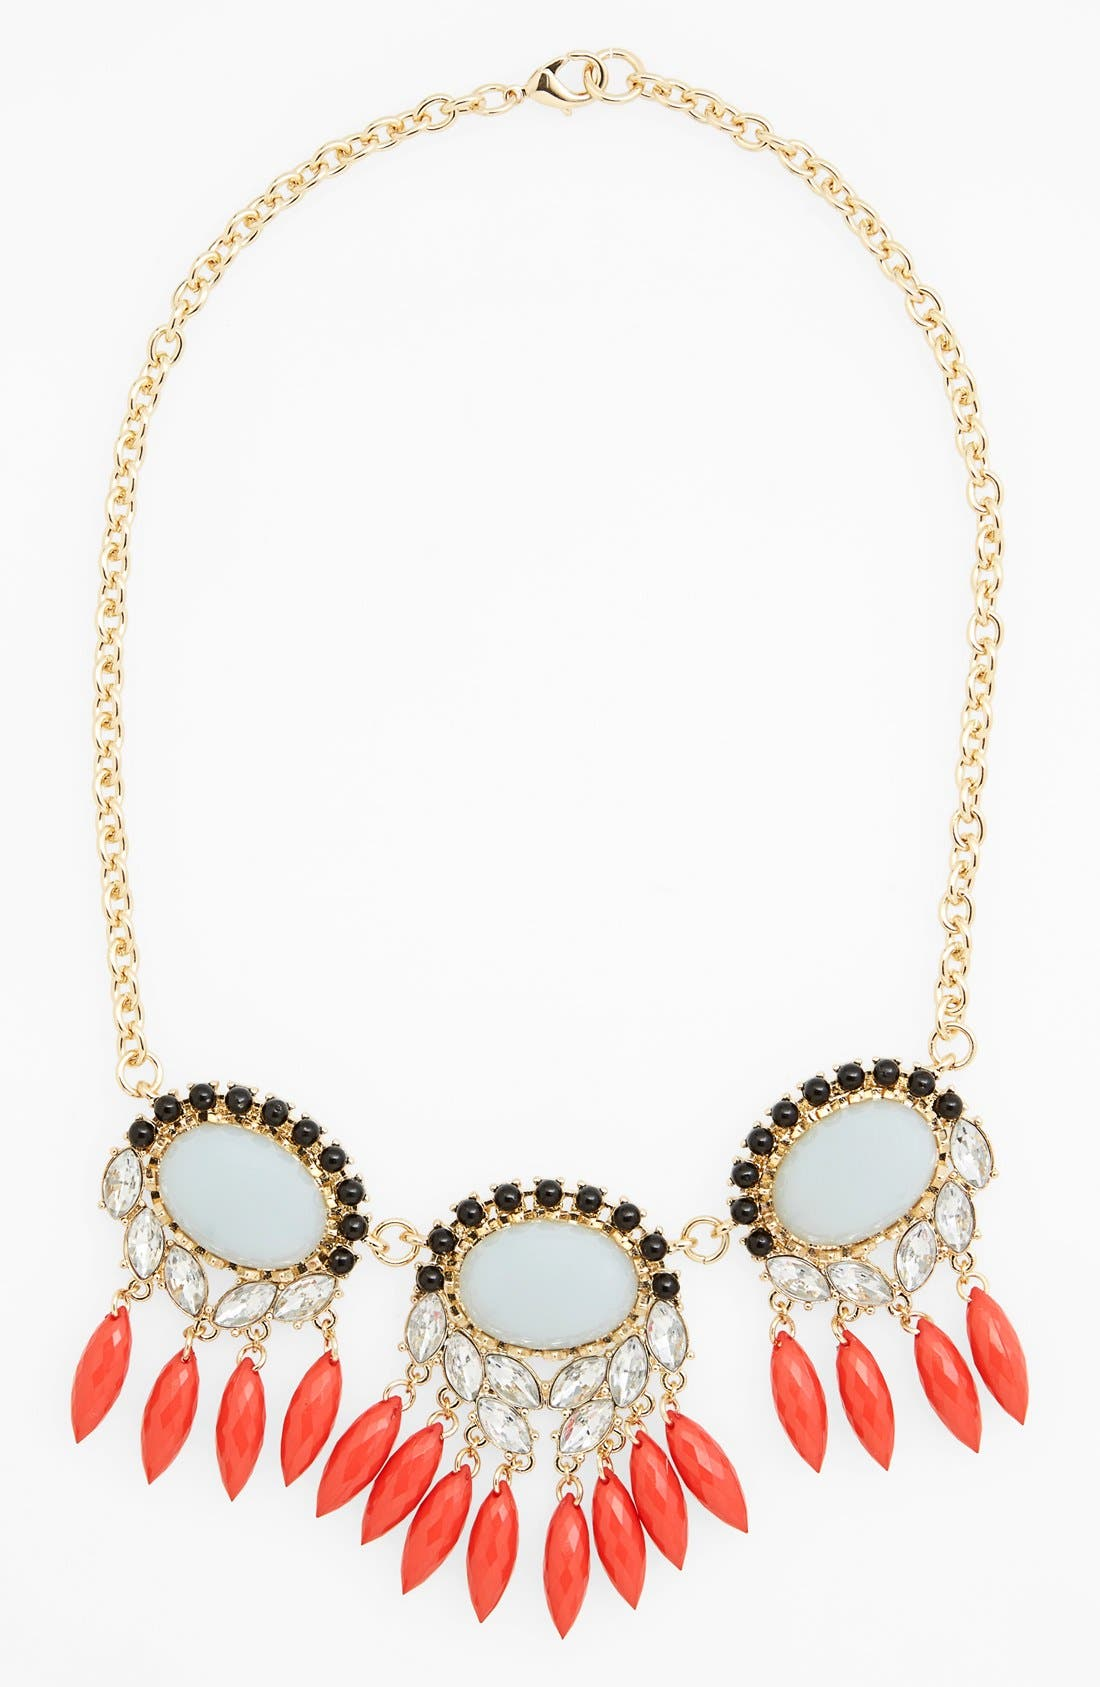 Alternate Image 1 Selected - Missing Piece Crystal Statement Necklace